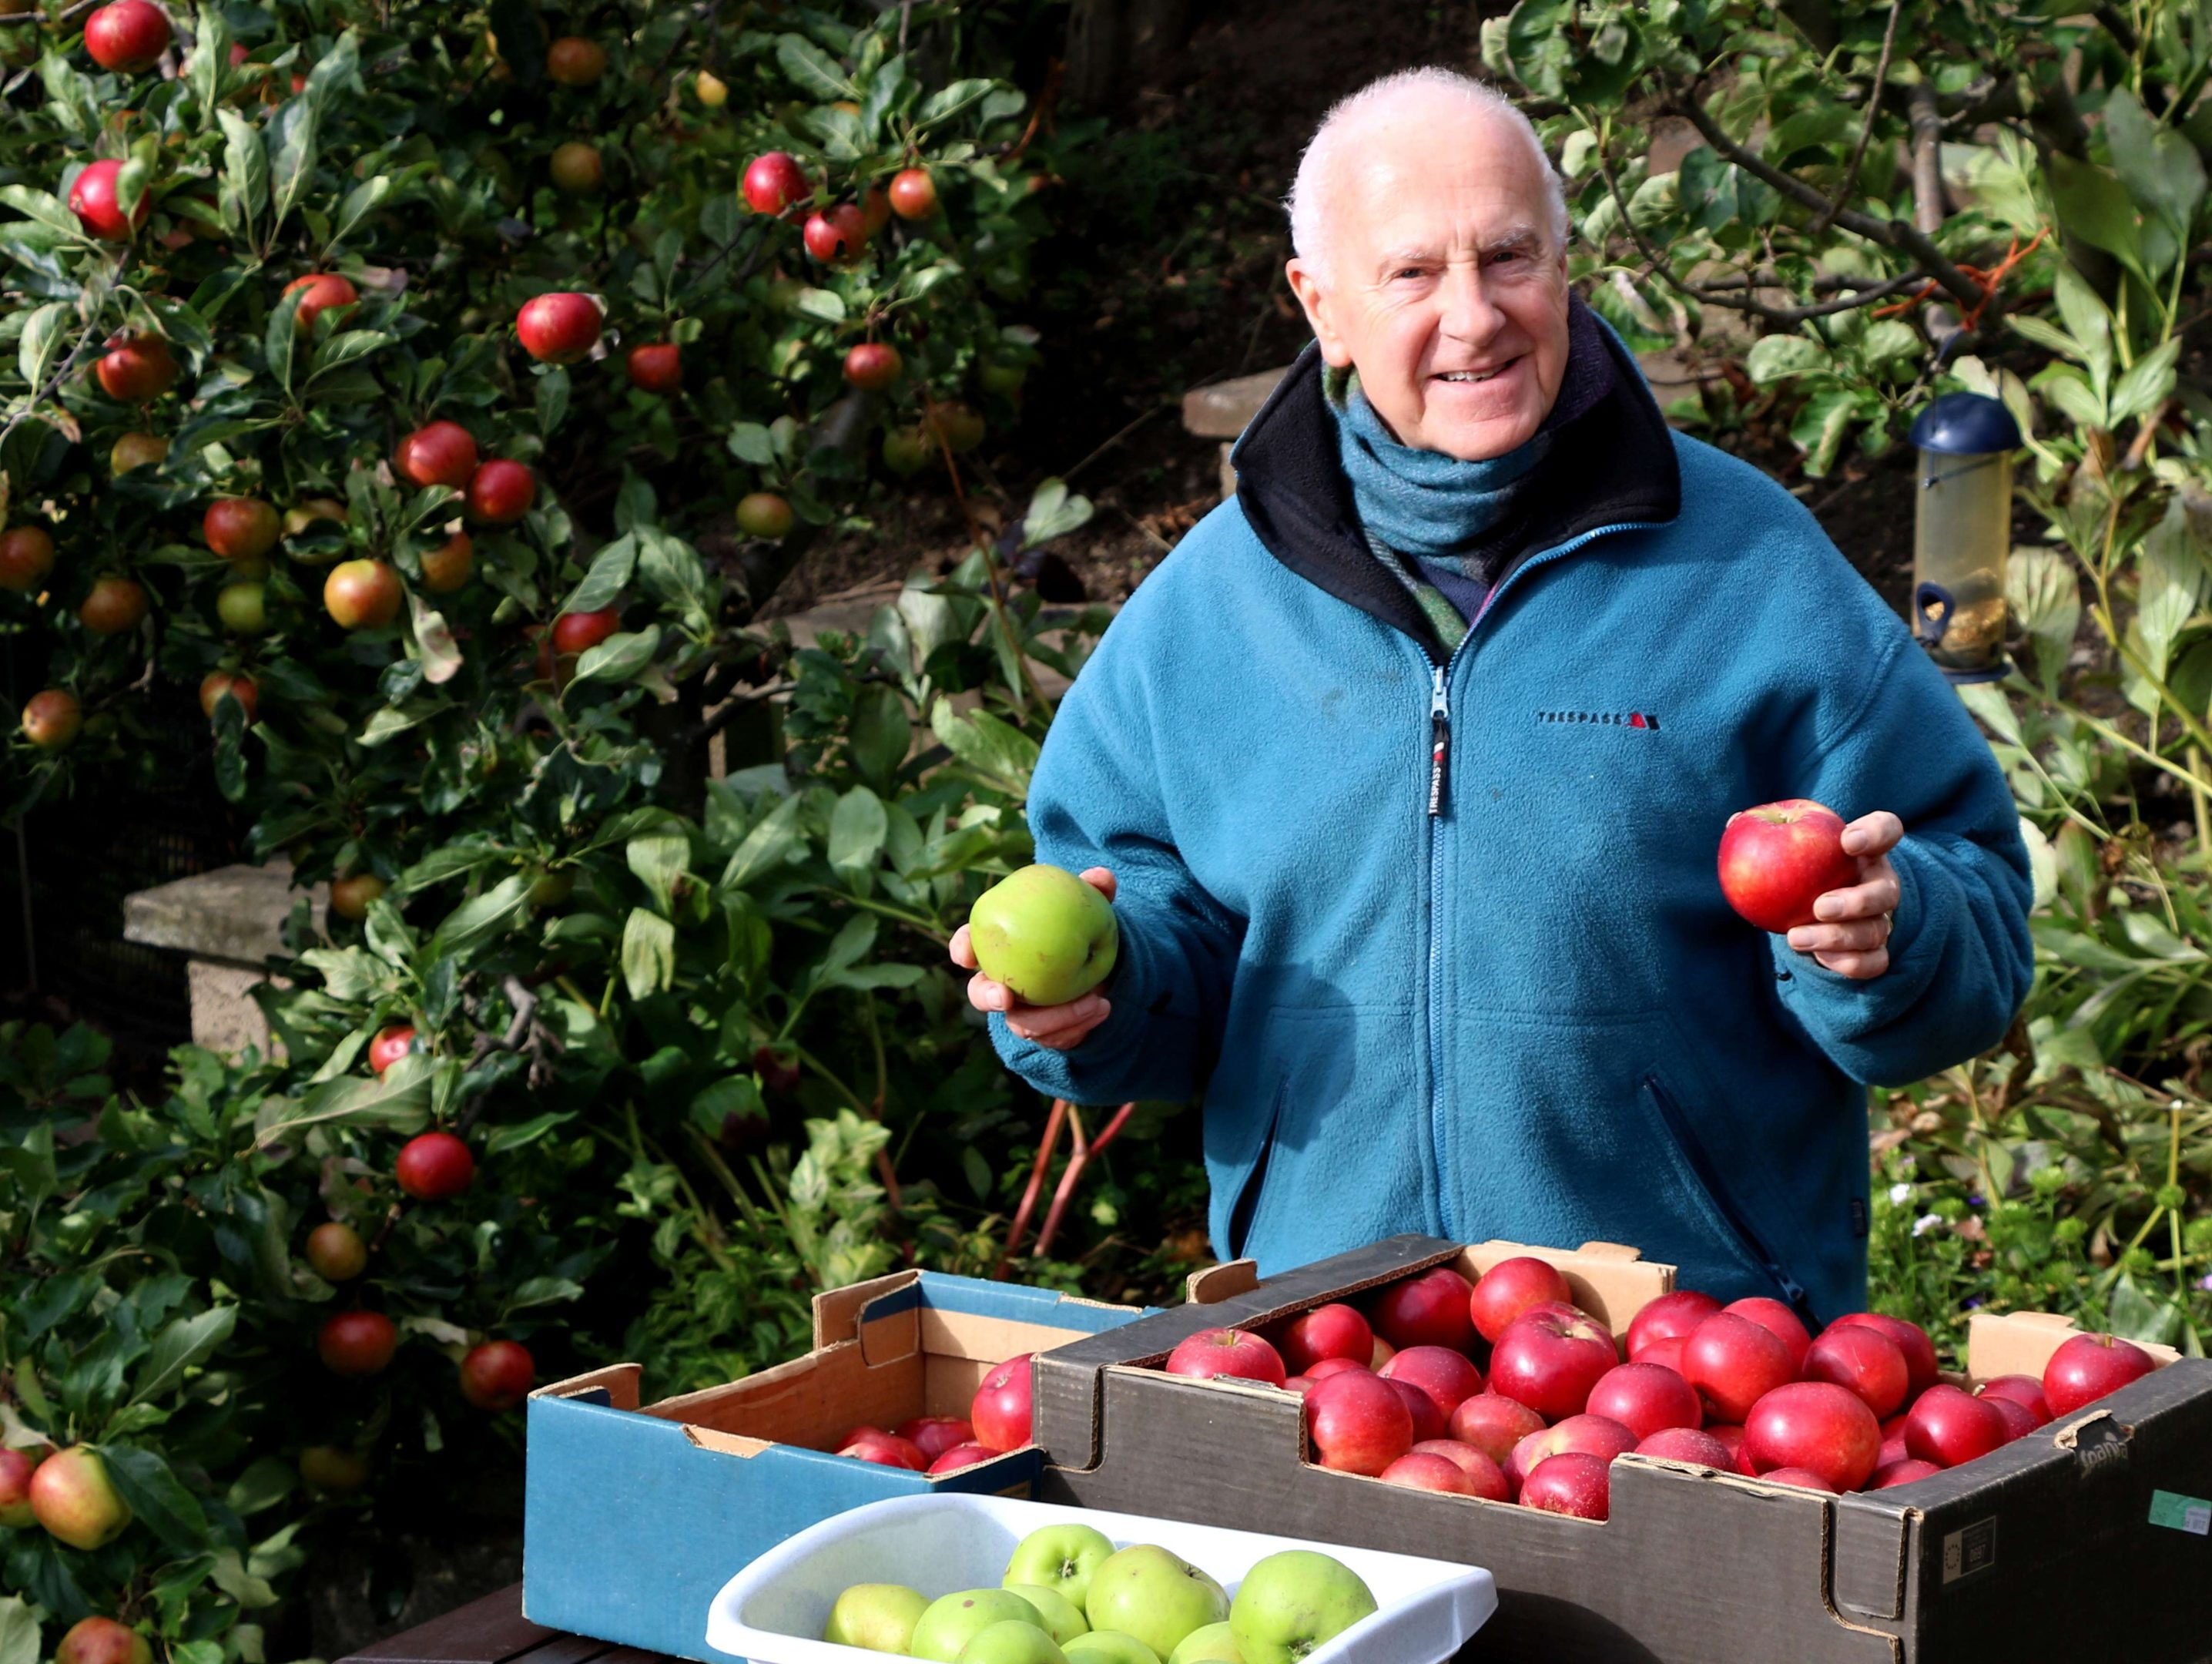 Harvesting the Red Devils and some Bramley apples